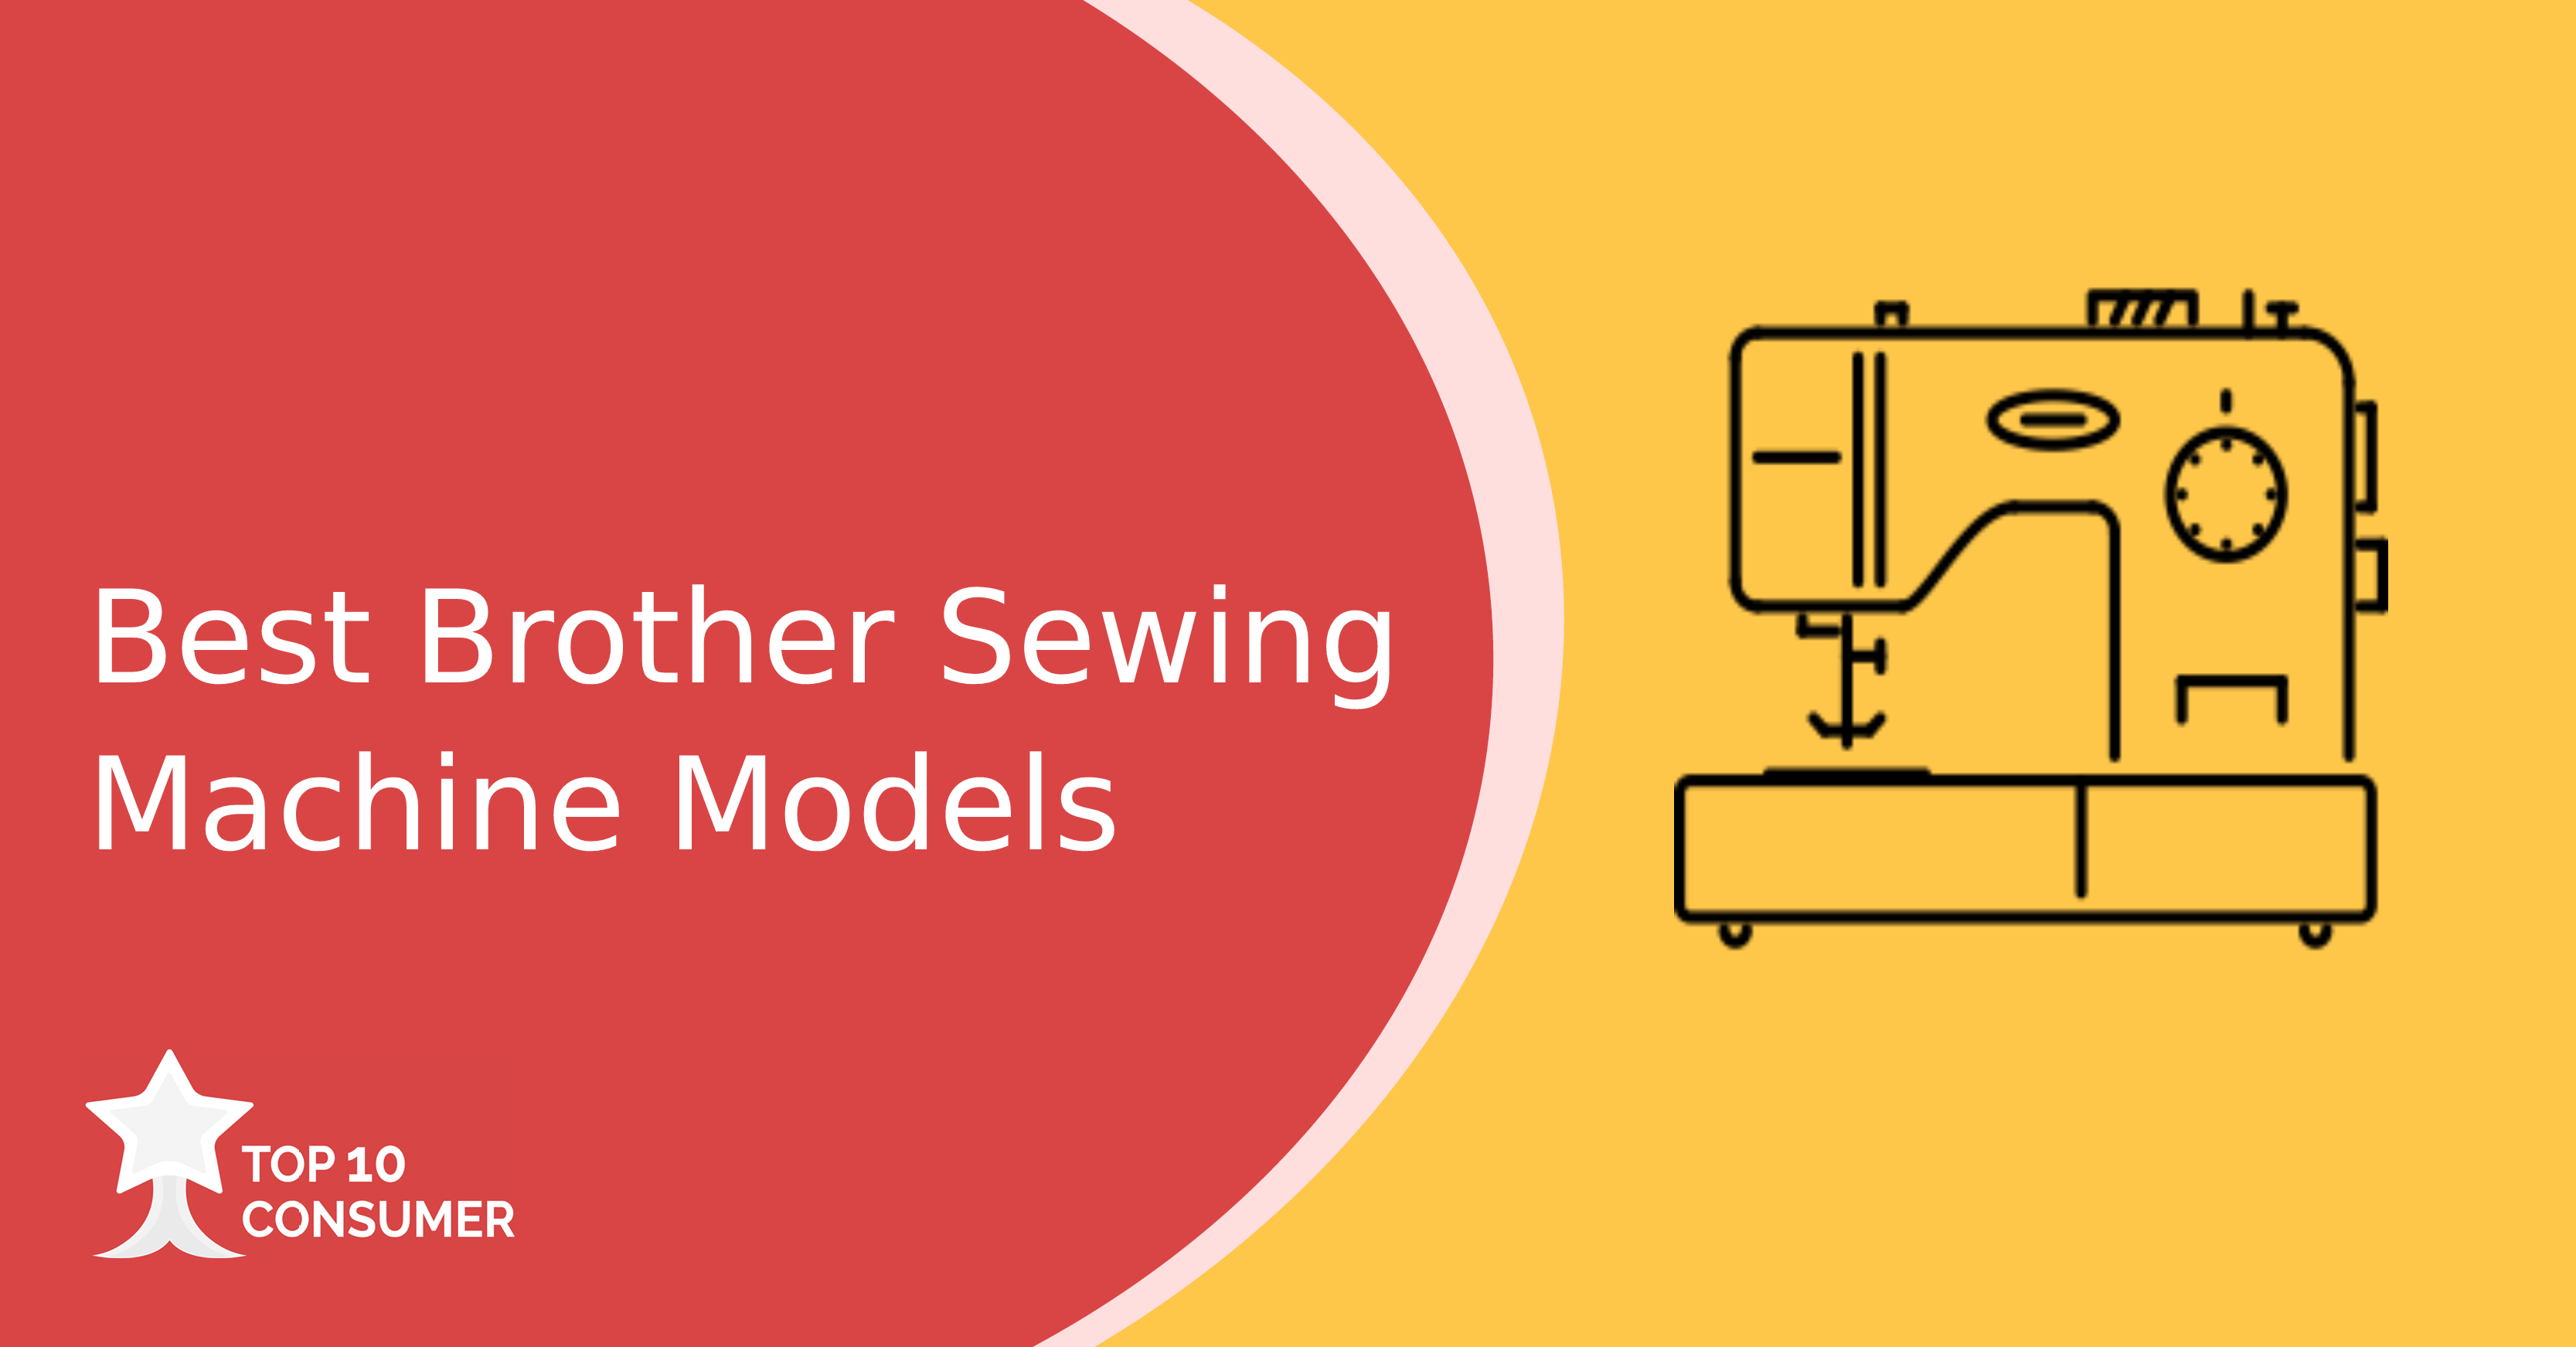 Best Brother Sewing Machine Models